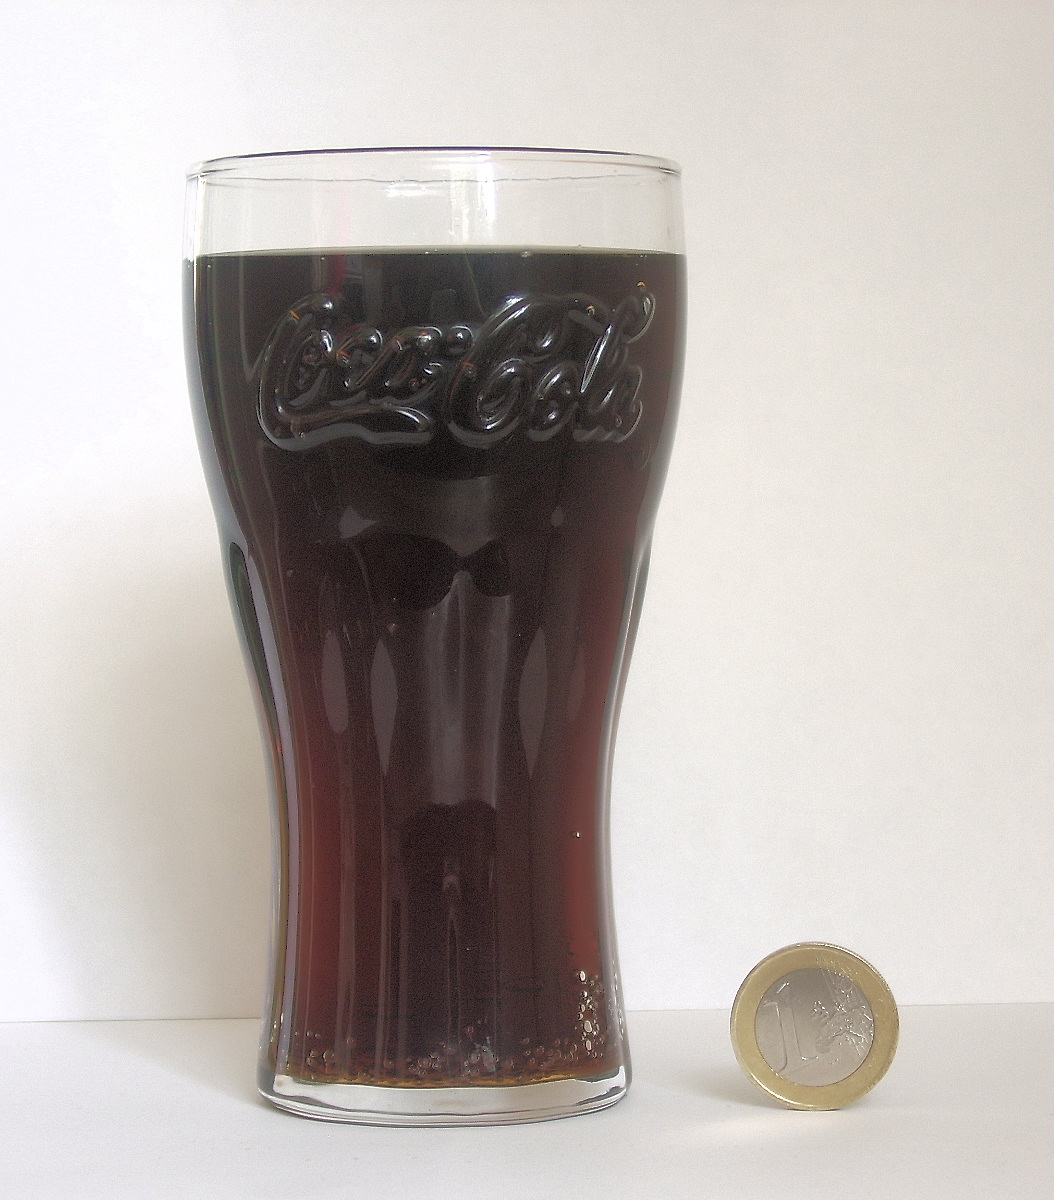 dating coke glasses Old bottle identification and dating guide this webpage is intended to help novice collectors and non-collectors better identify, describe, and date the bottles they encounter.